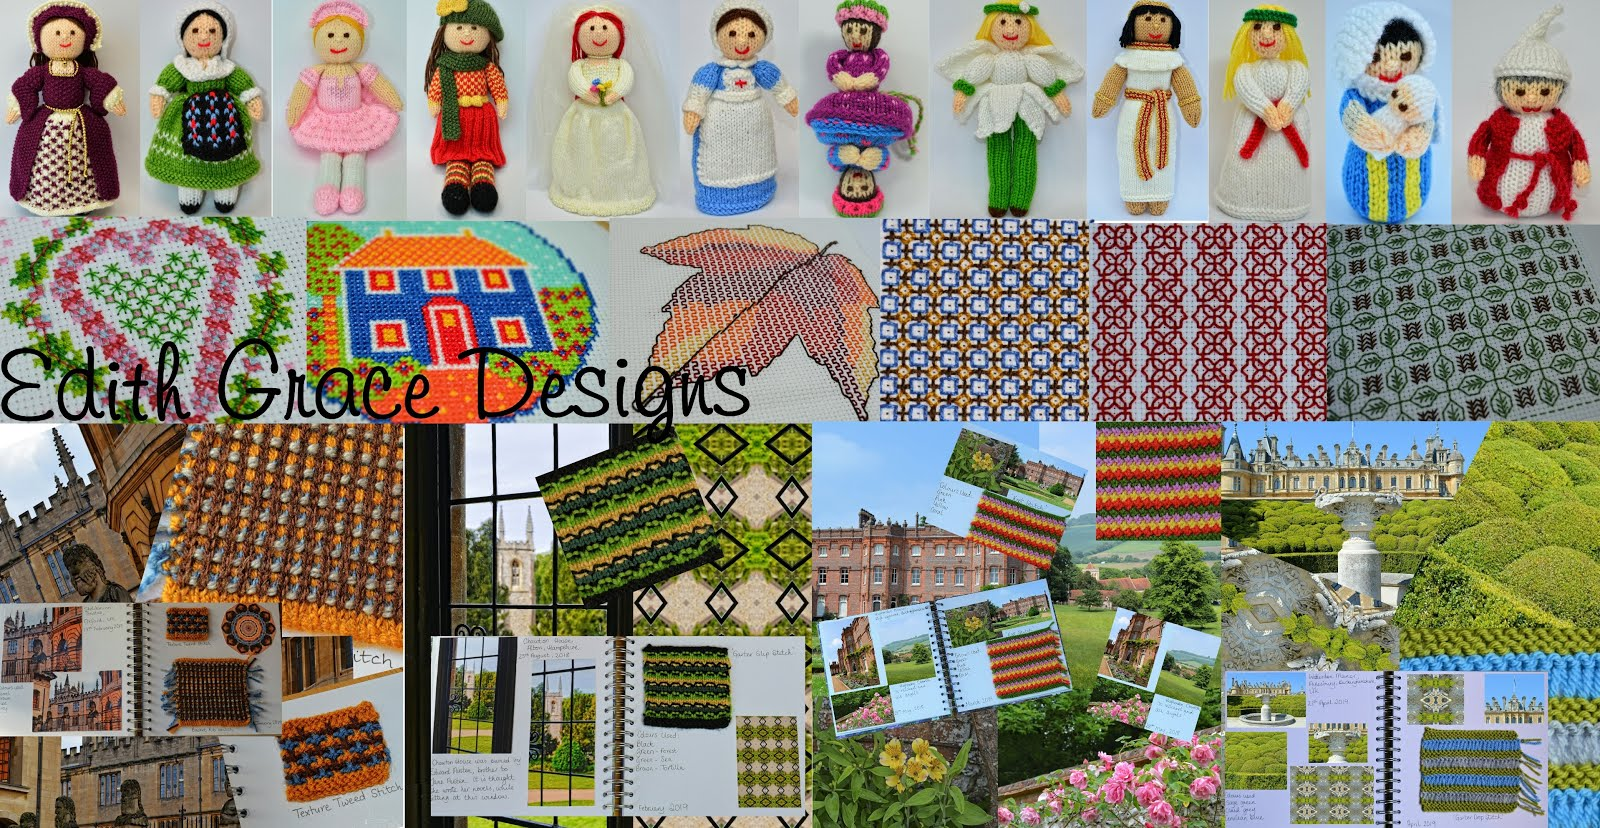 Edith Grace Designs Website